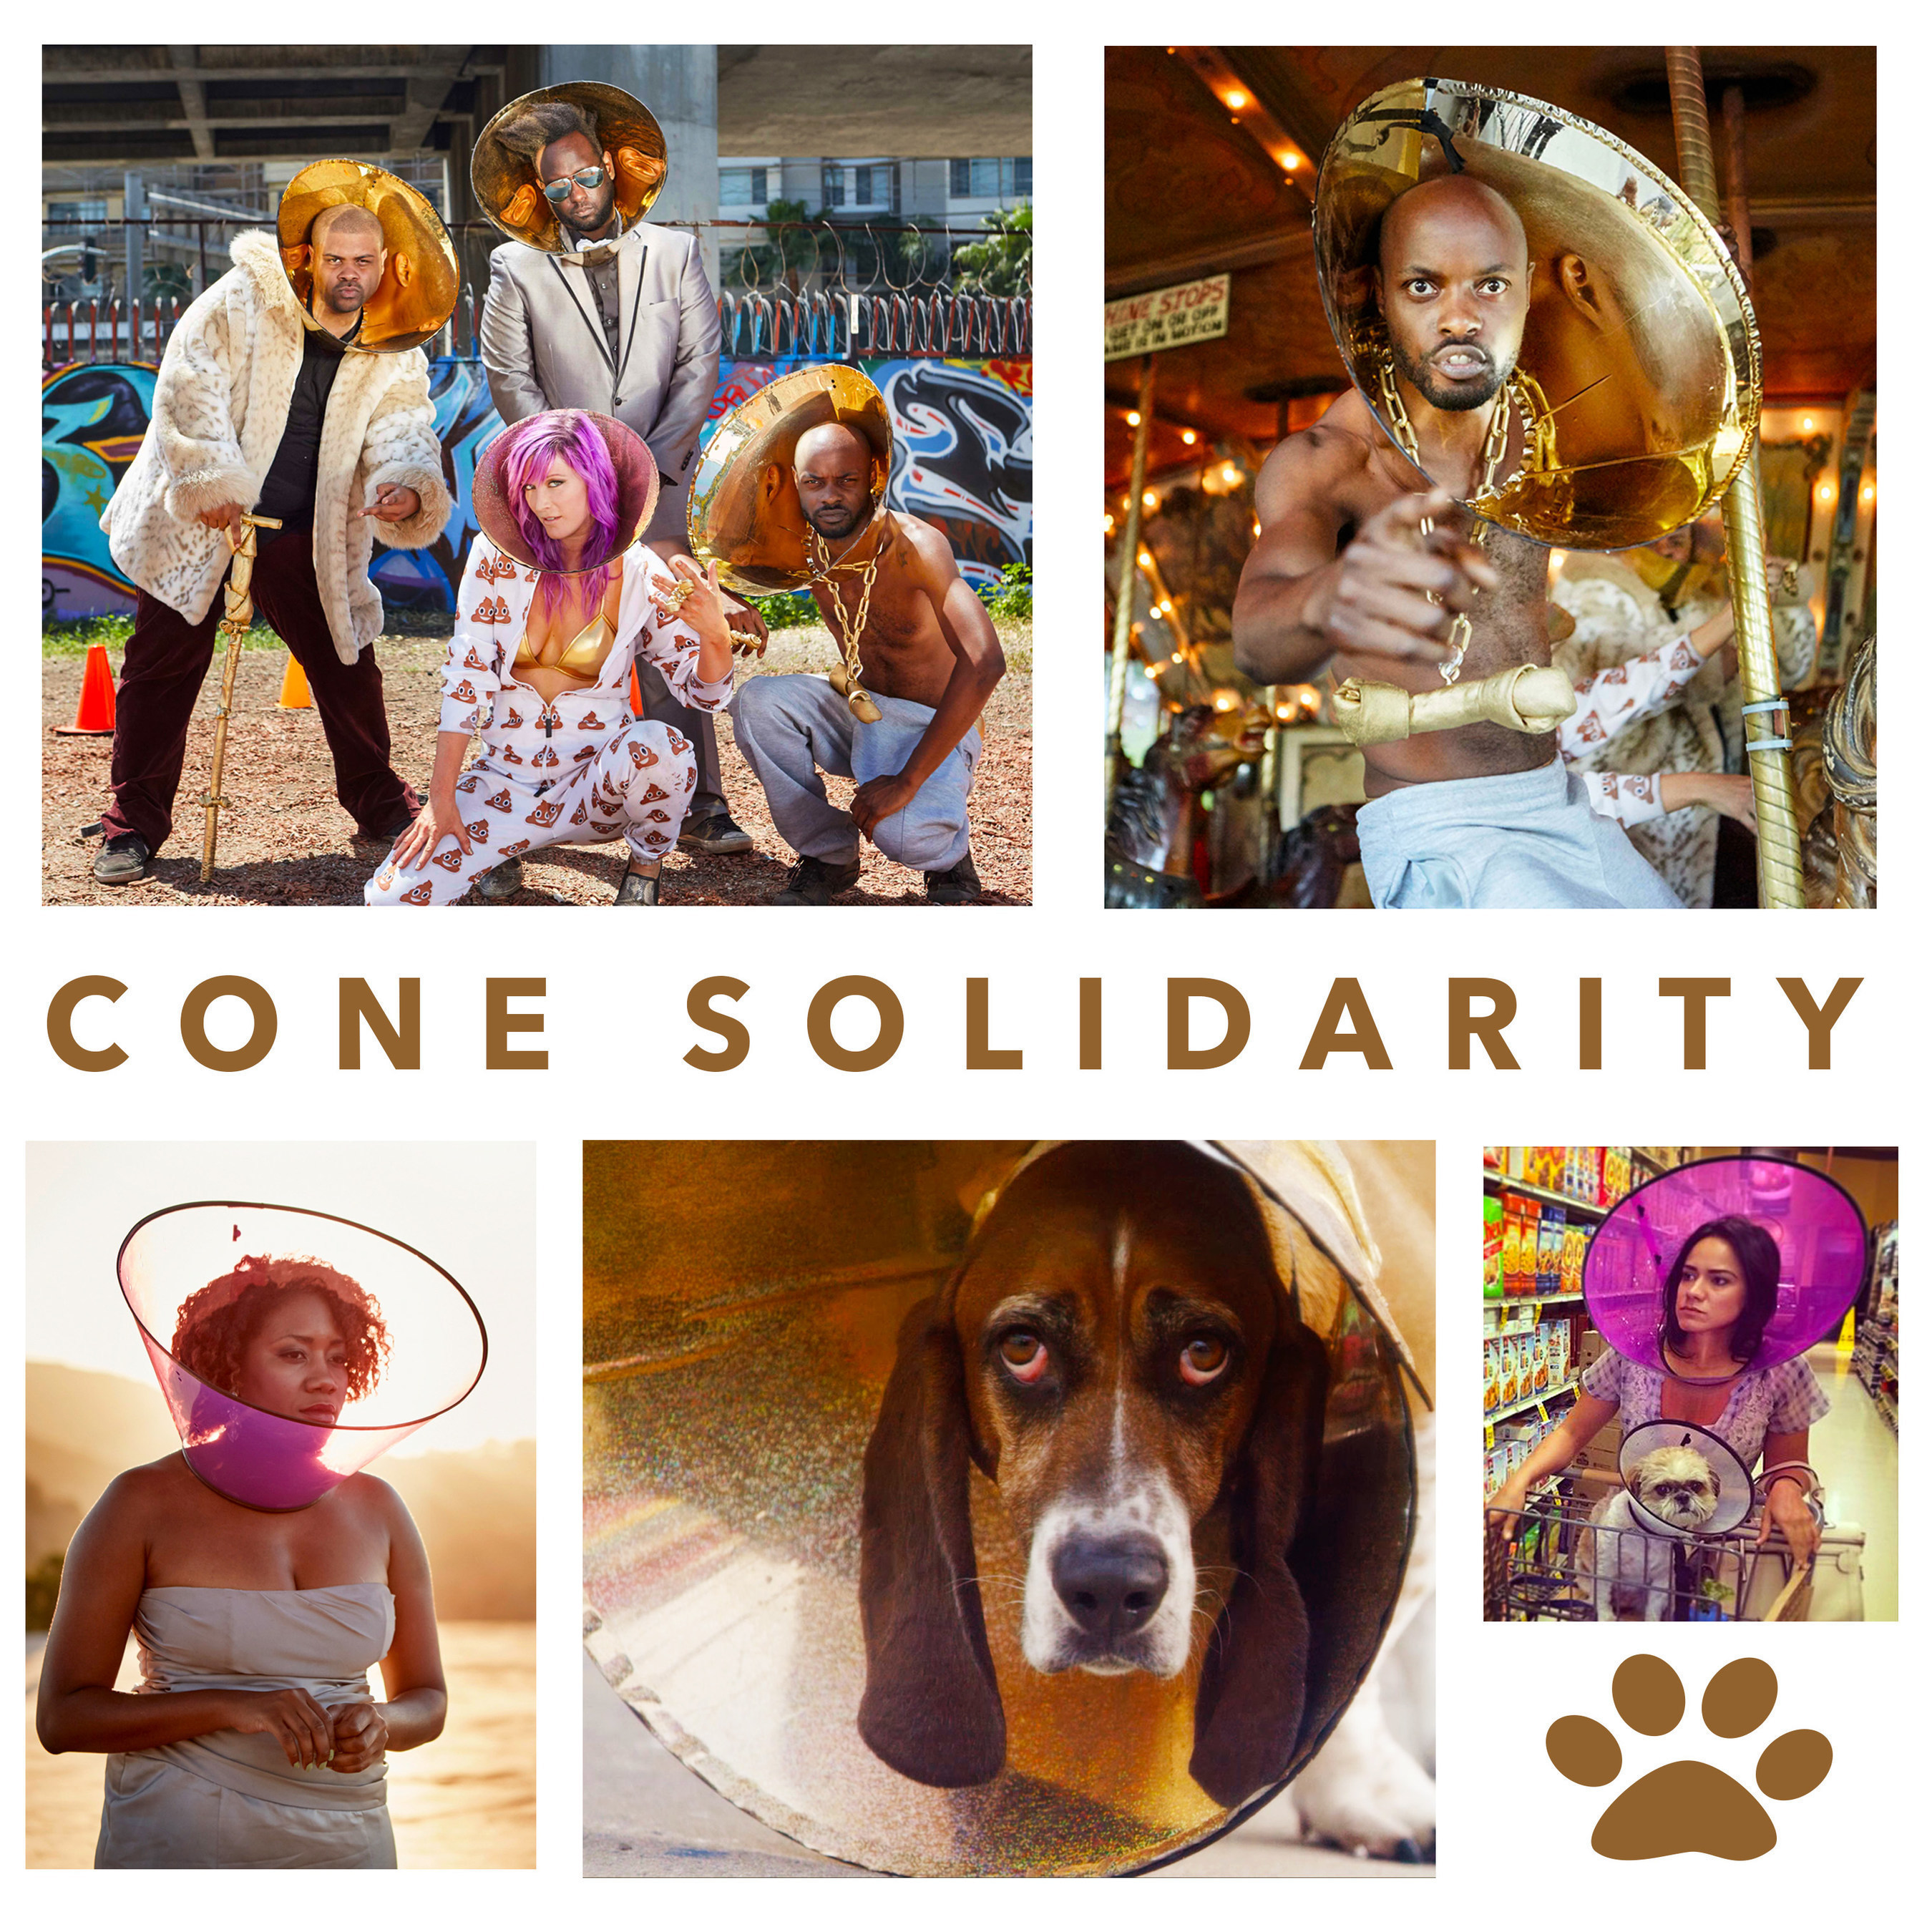 New Comedy Rap Video 'CONE SOLIDARITY' Debuts Today Benefitting Animal Shelter THE AMANDA FOUNDATION